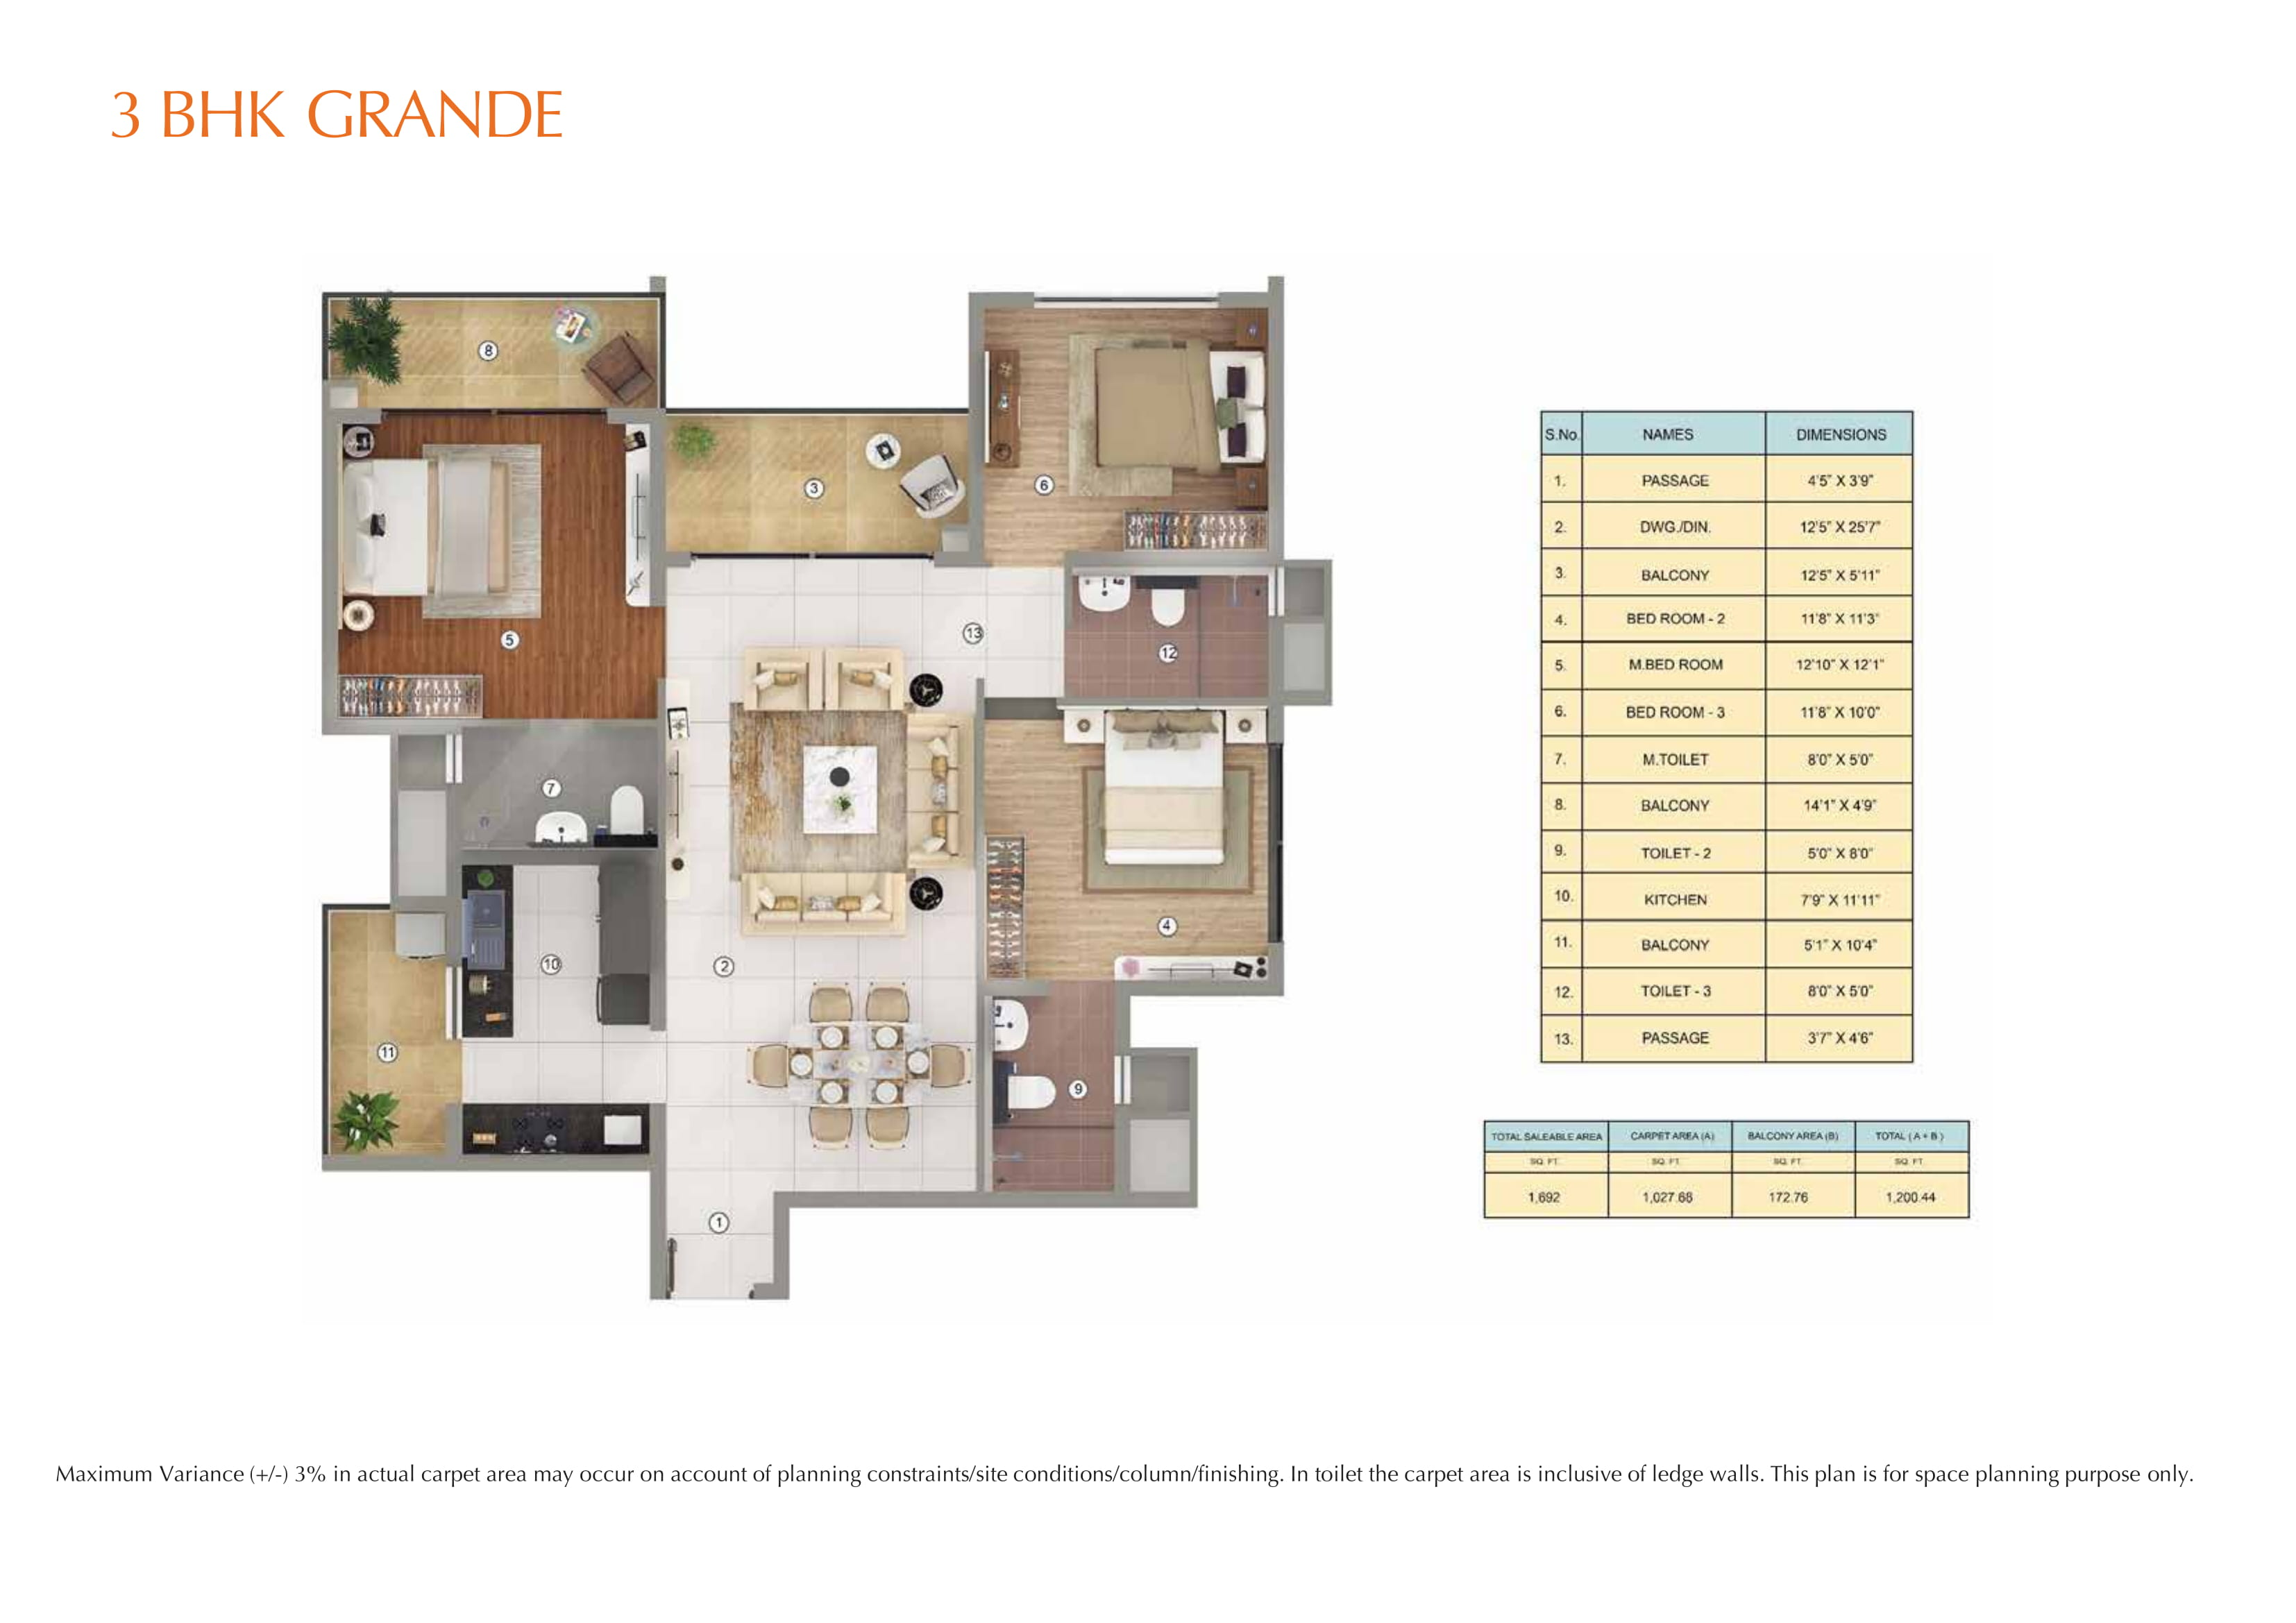 3BHK GRANDE Layout Plan